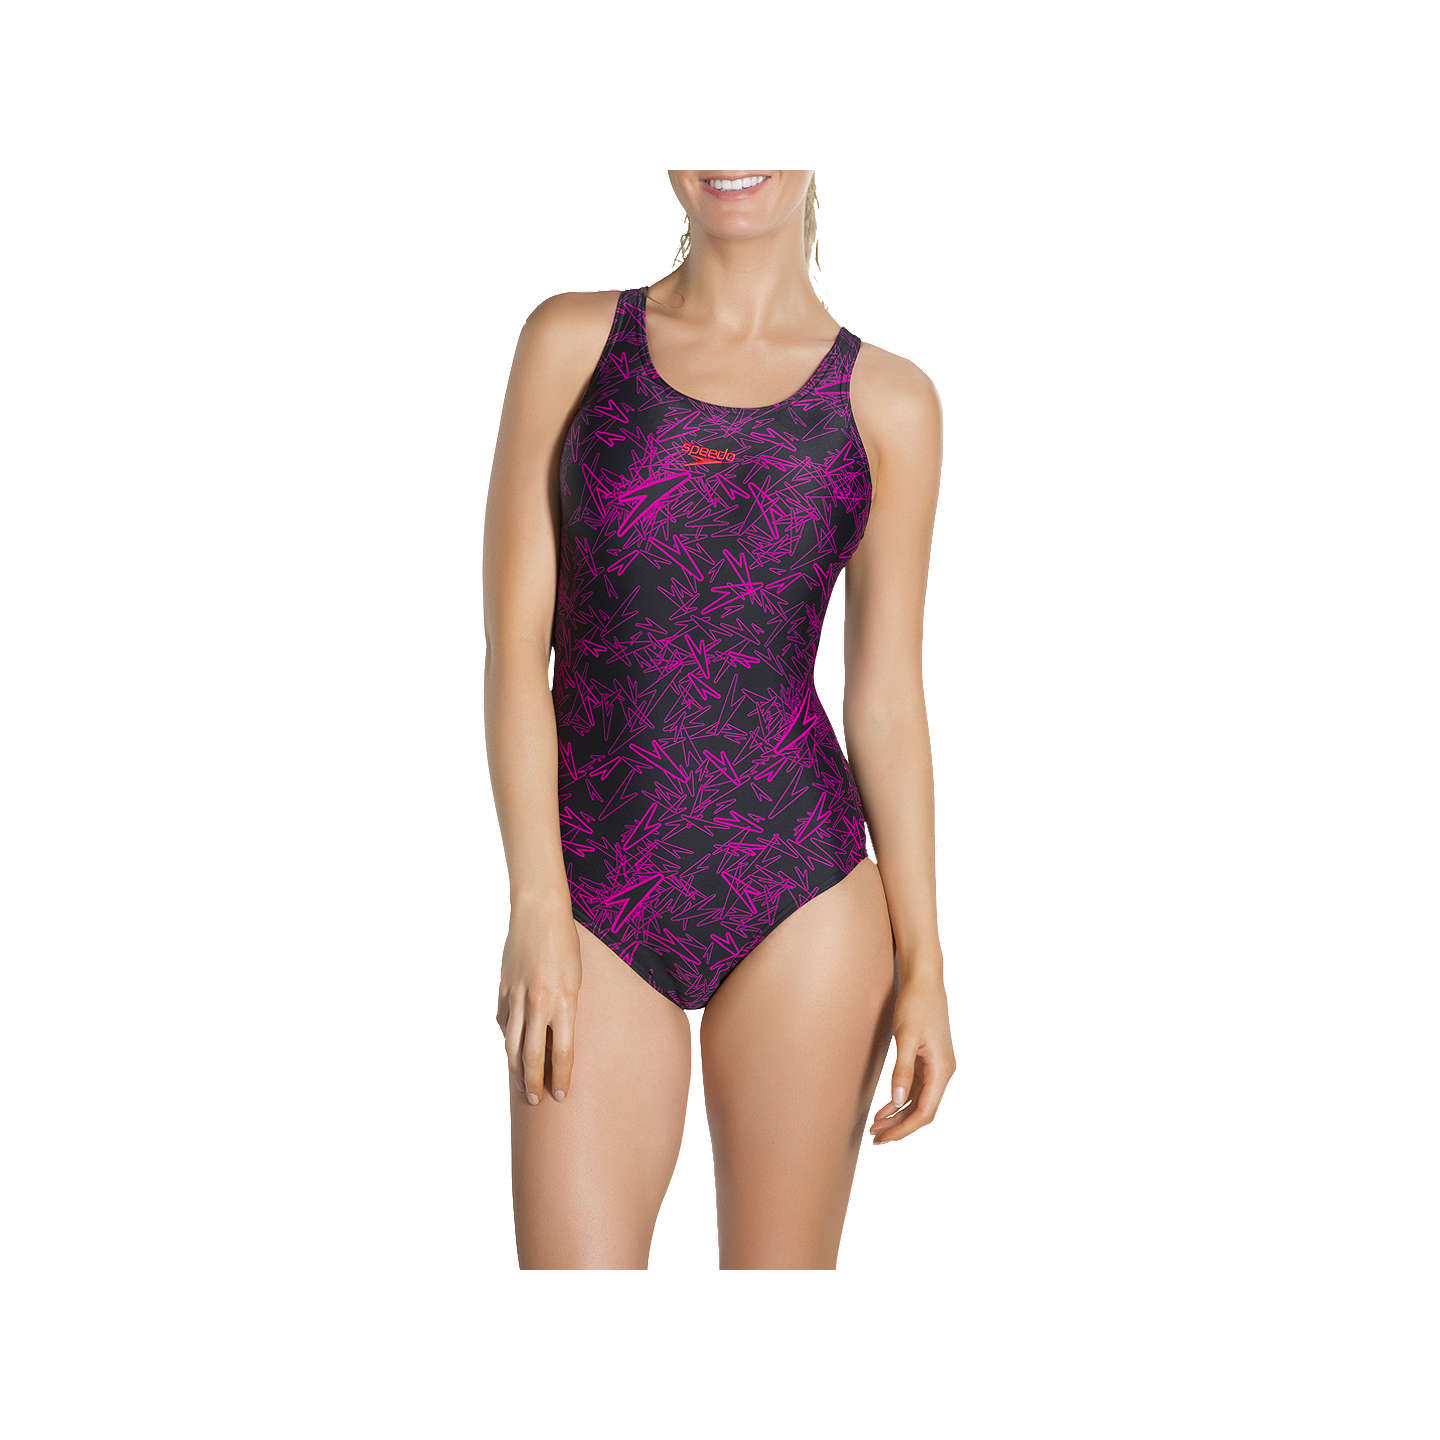 BuySpeedo Boom All-Over Muscleback Swimsuit, Black/Pink, 32 Online at johnlewis.com